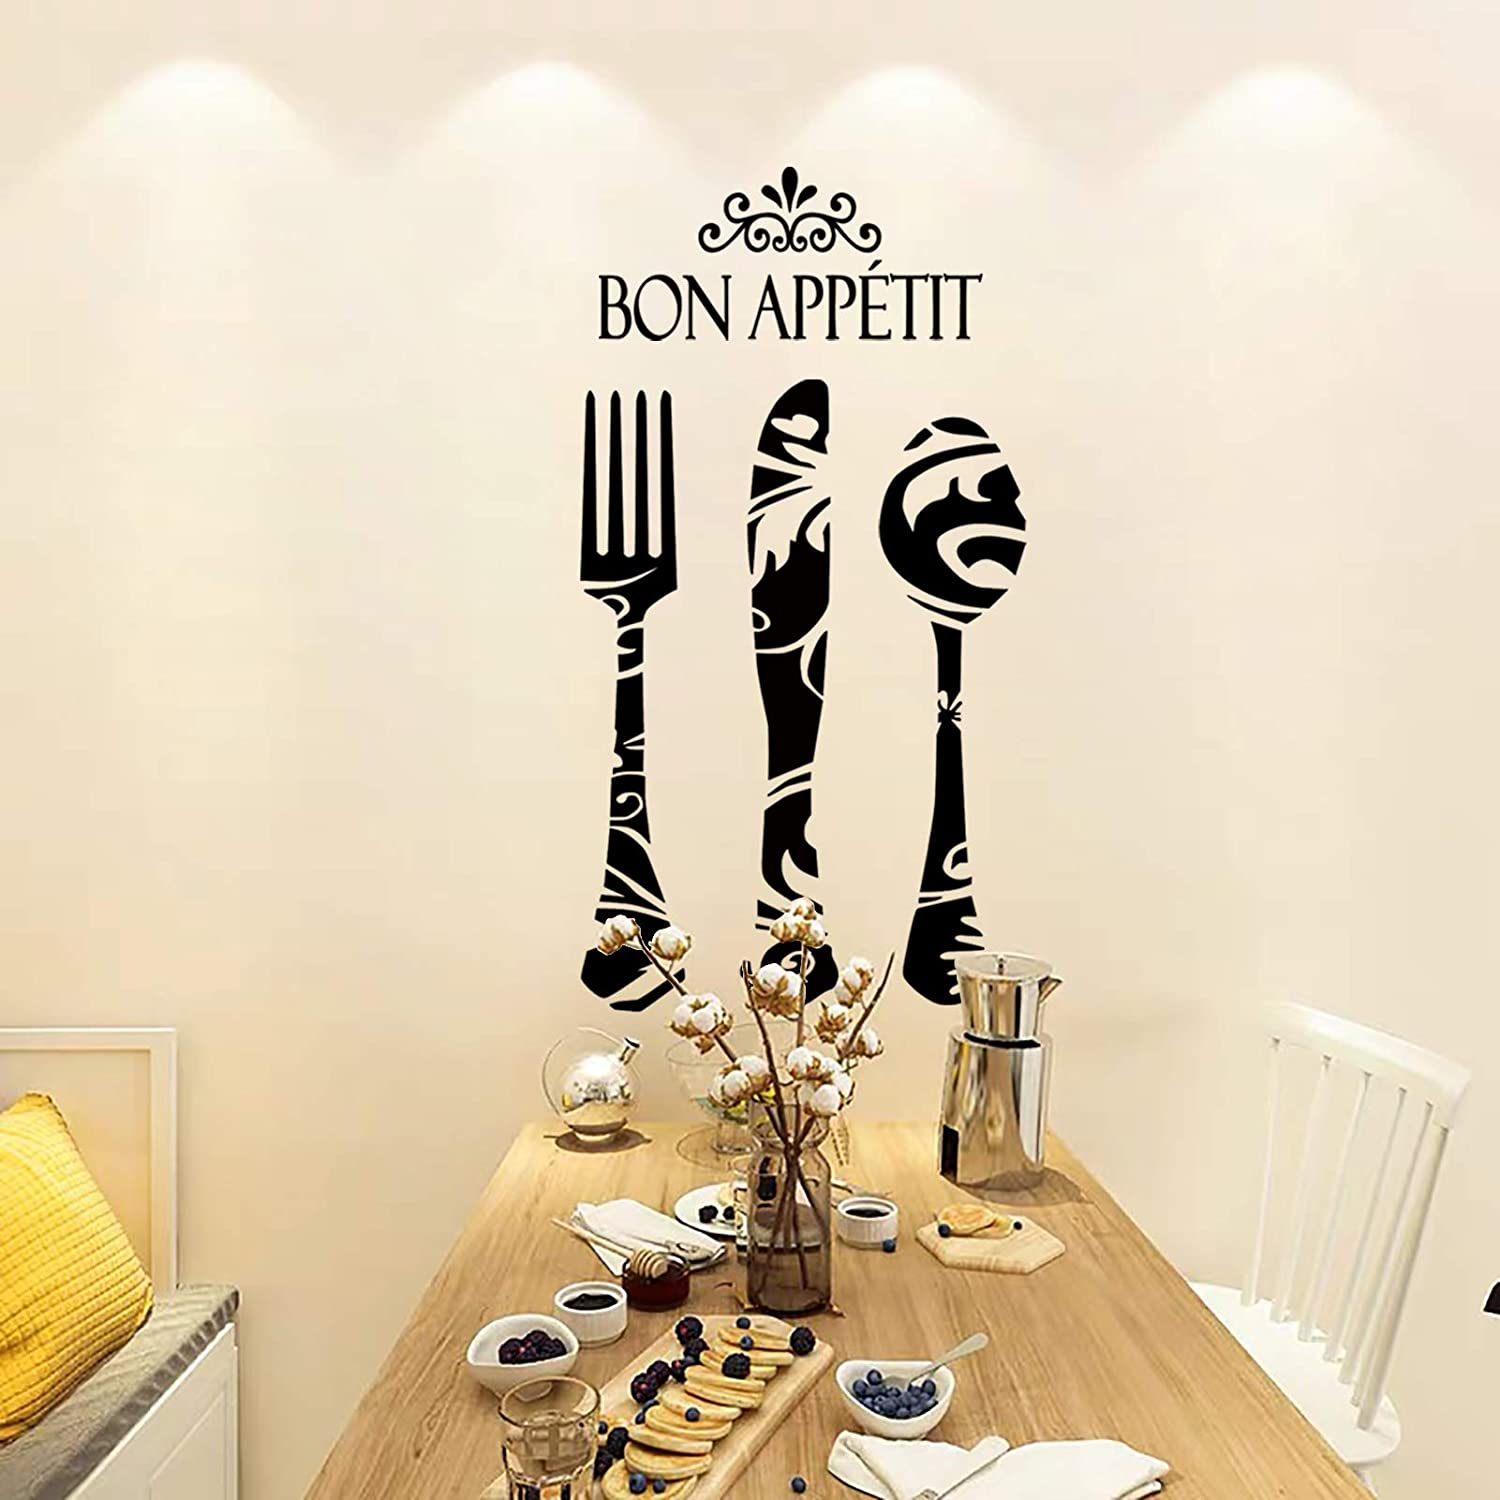 BIUBIUGO Kitchen Wall Decals Spoon,Fork,Knife Bon Appetit Wall Decals,Kitchen Wall Stickers Dining Room Wall Decor,Decals for Home Restaurant Decor(Black)